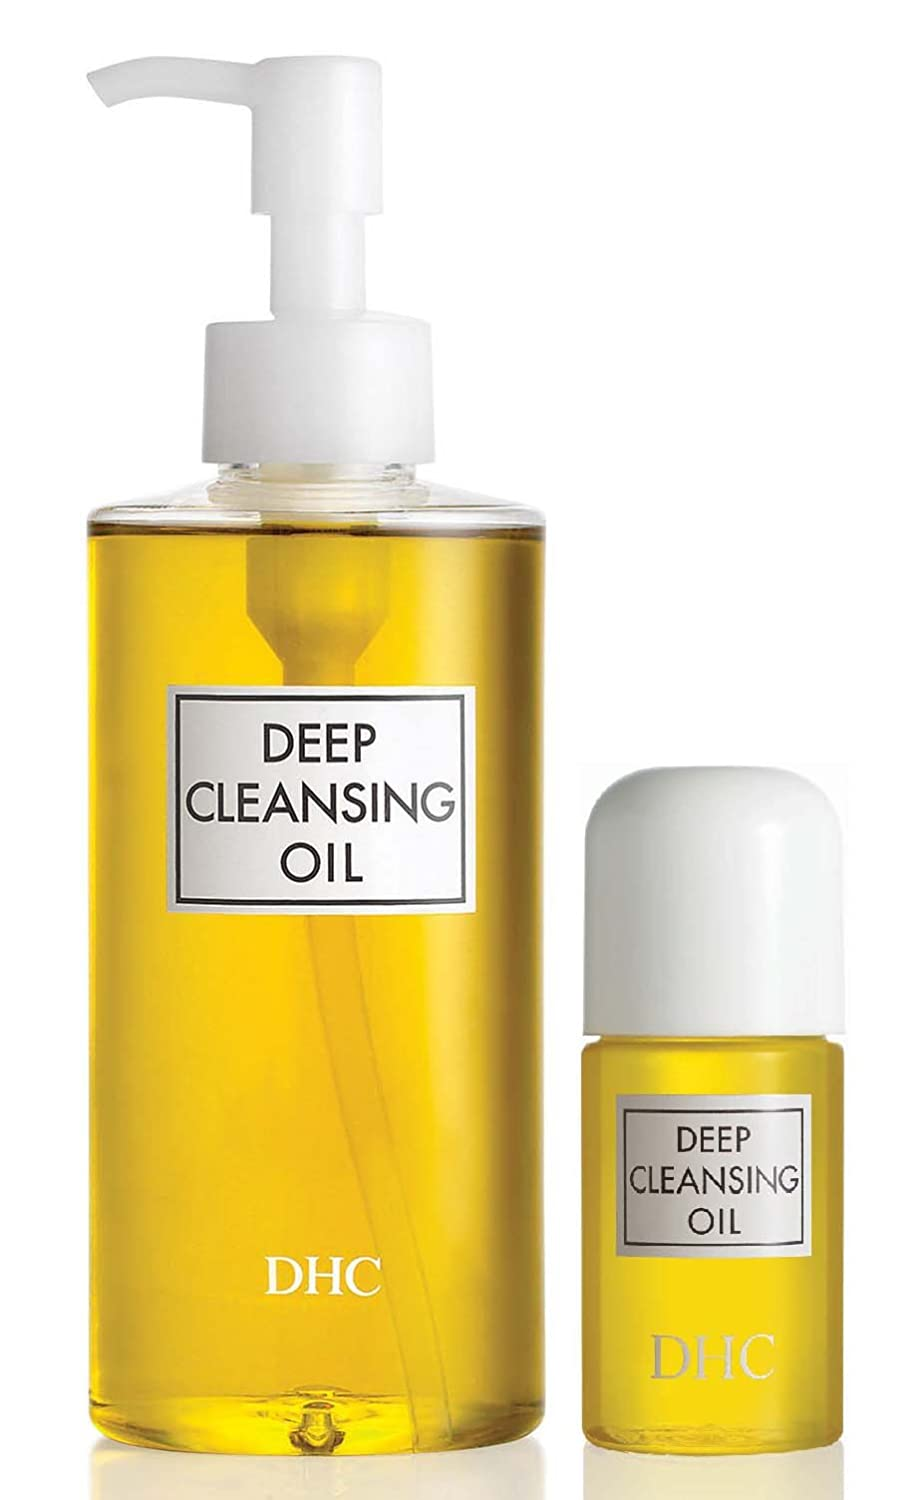 DHC Deep Cleansing Oil 6.7 fl. oz. & Deep Cleansing Oil Mini 1 fl. oz.